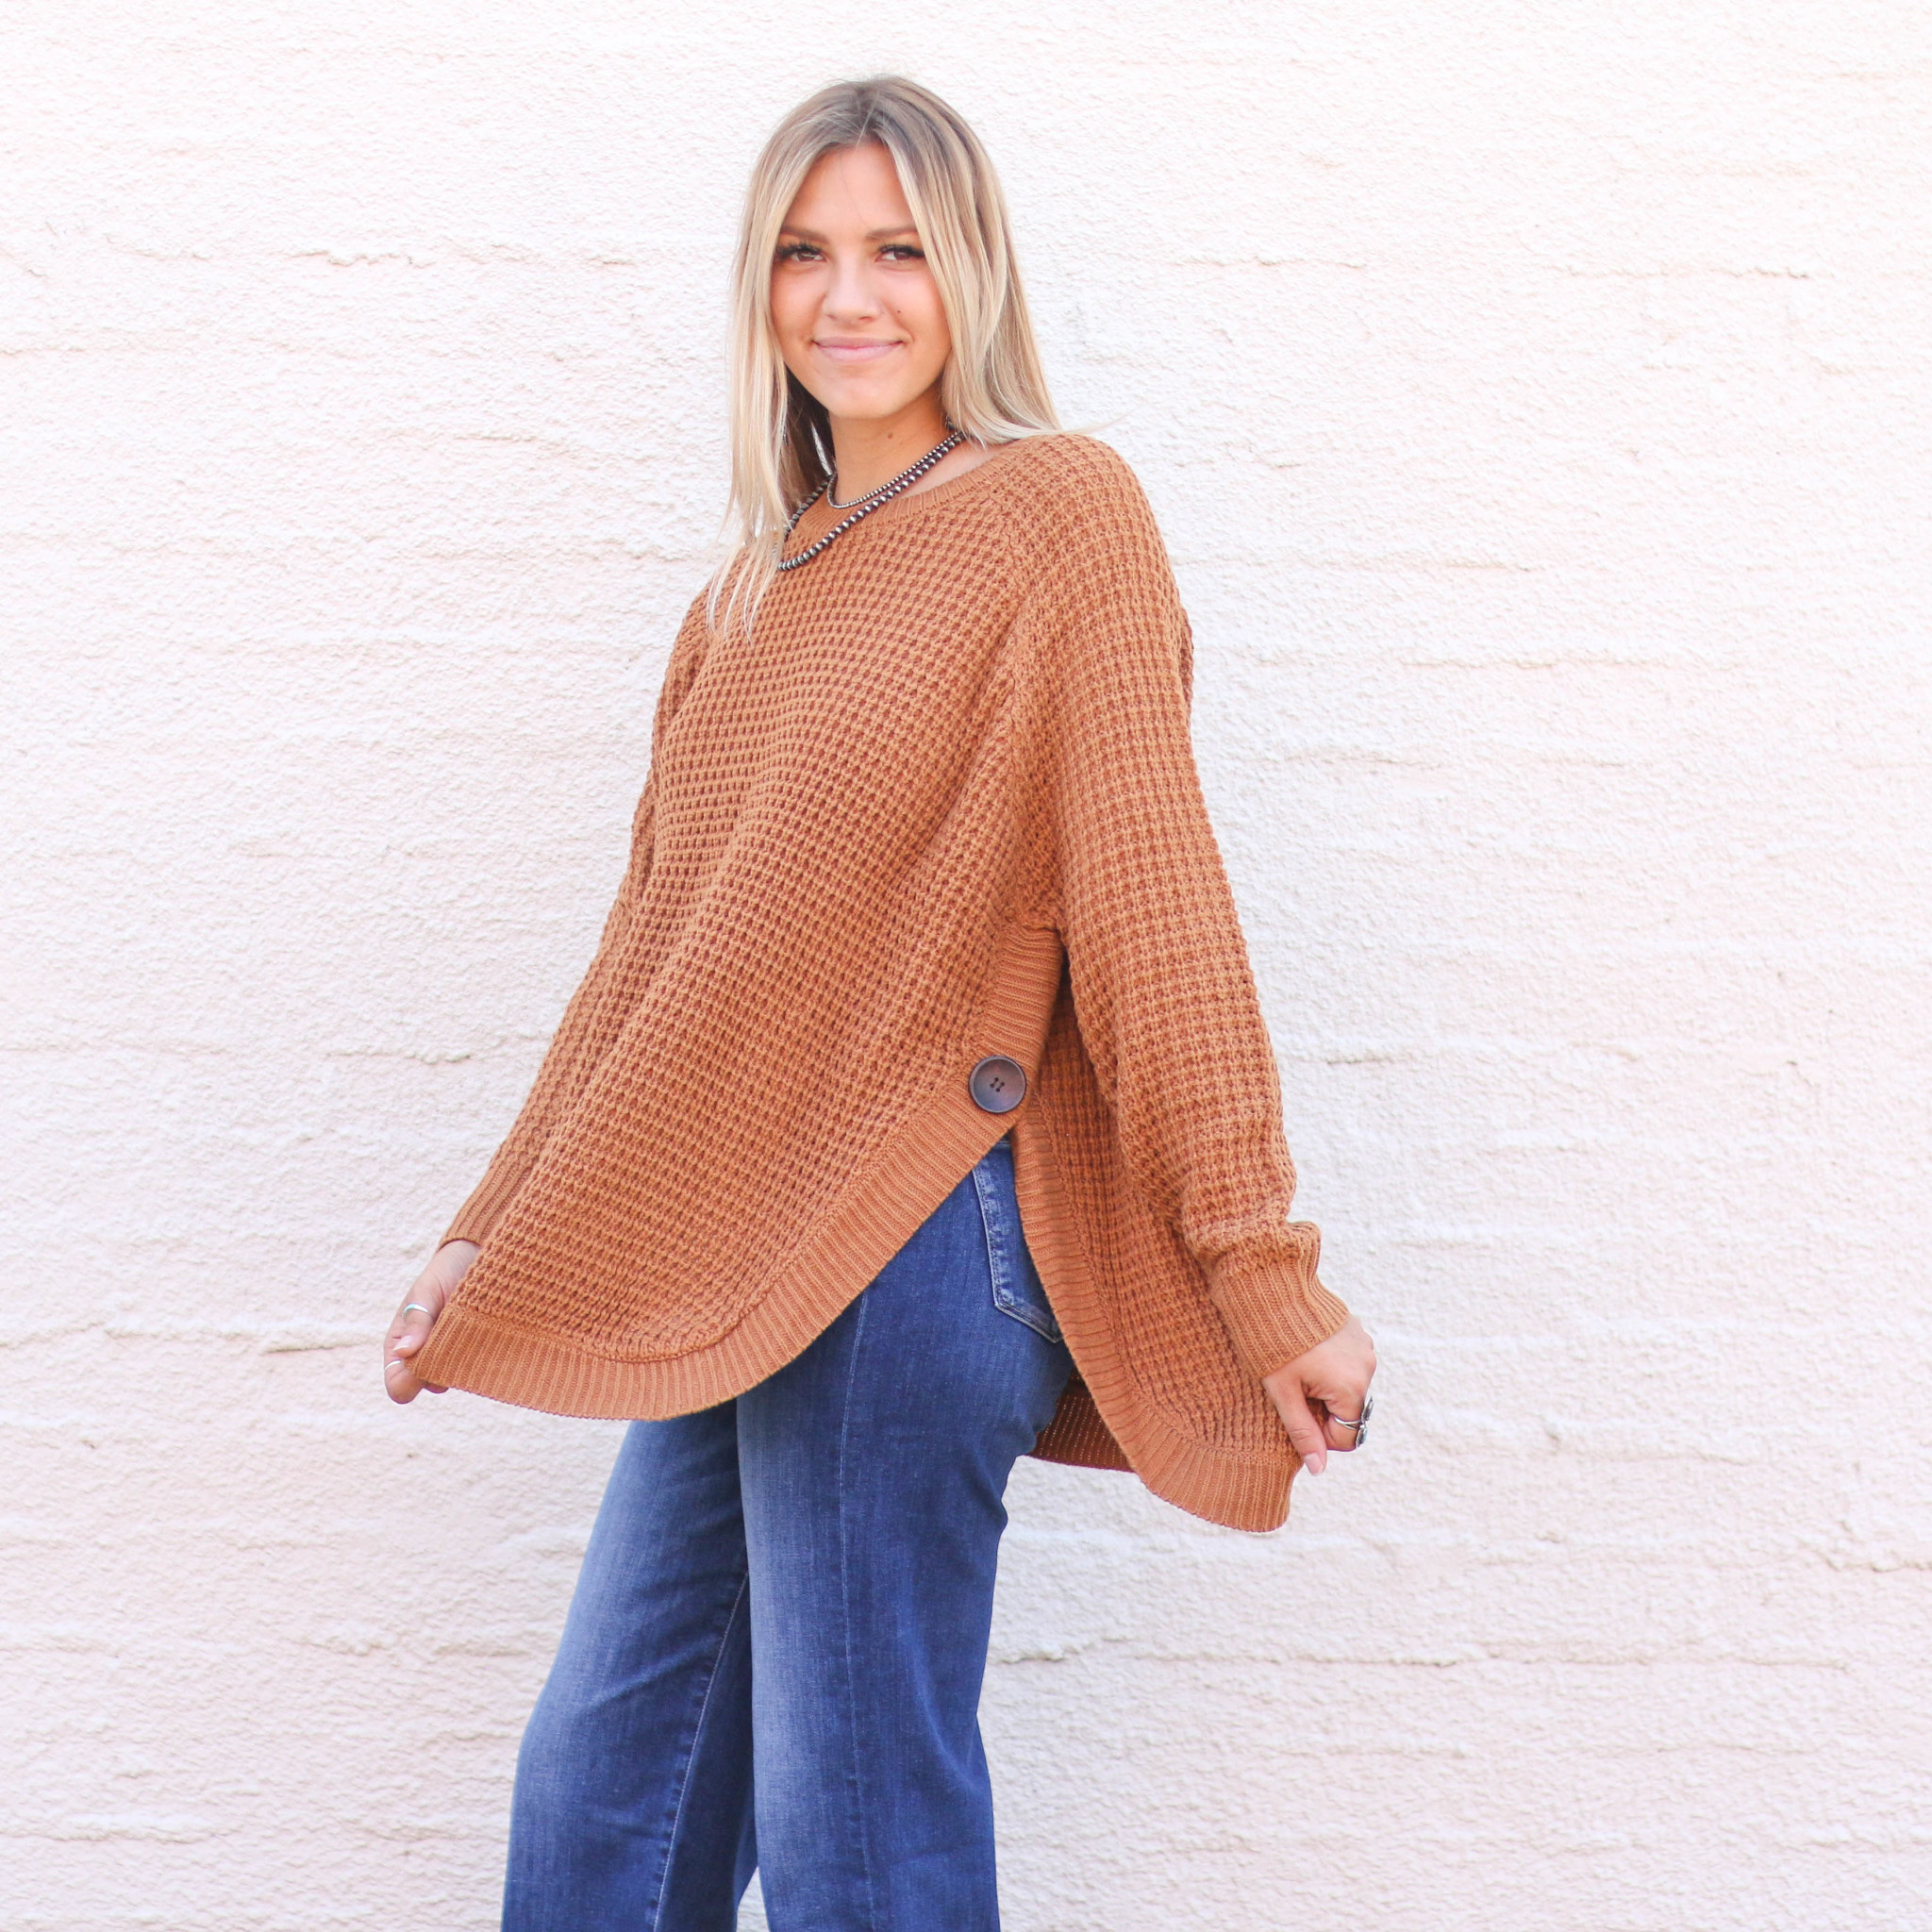 Punchy's Caramel Rounded Bottom Sweater